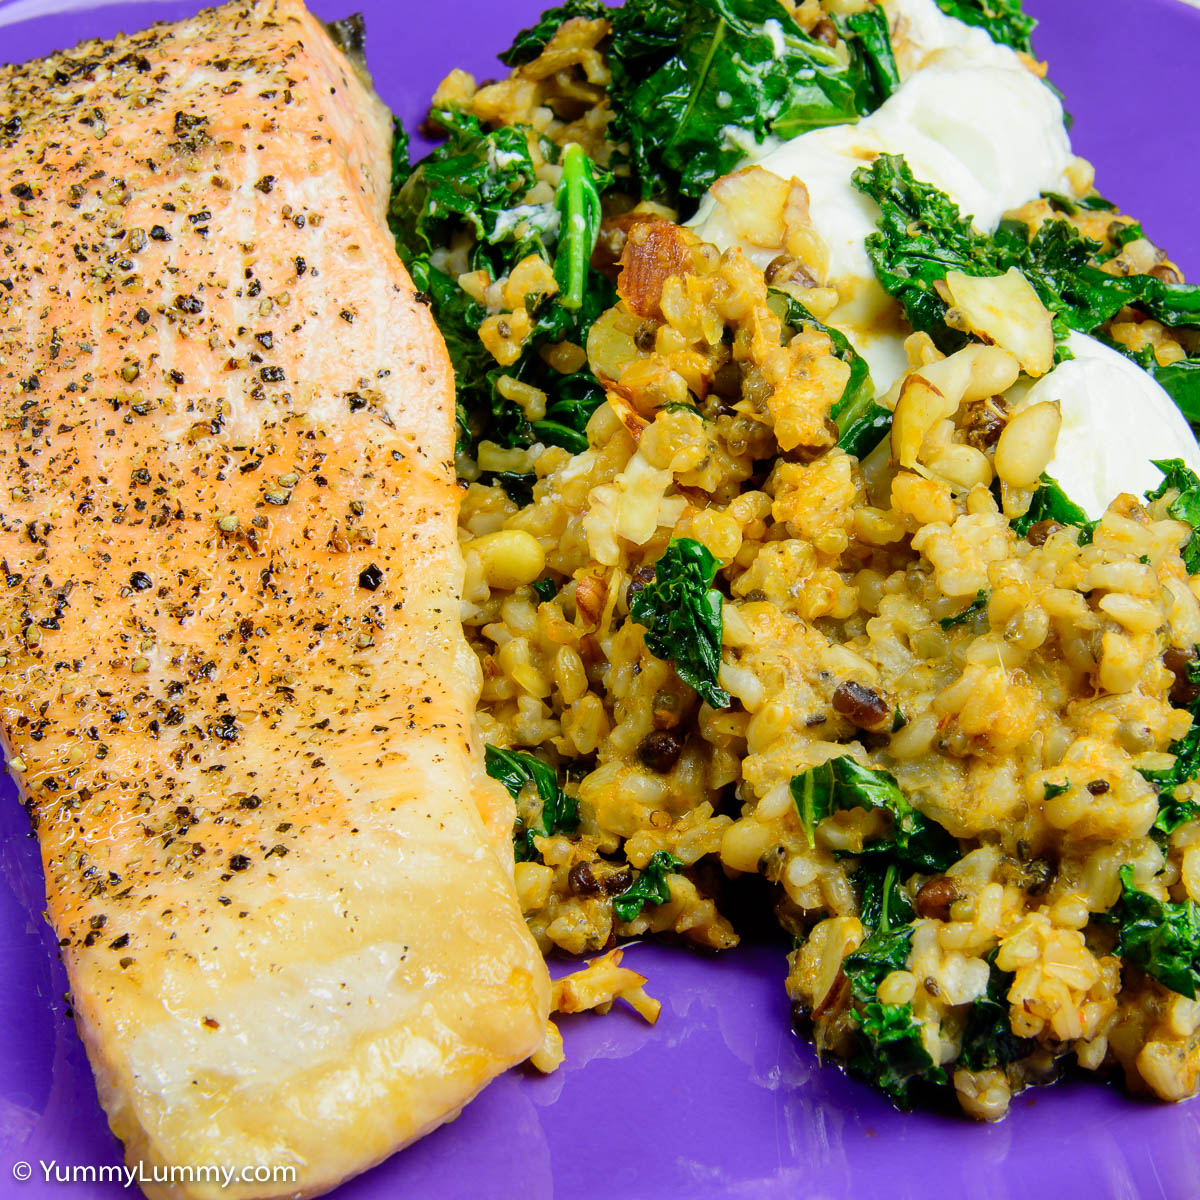 Tuesday dinner. Curry salmon with kale, quinoa and rice.